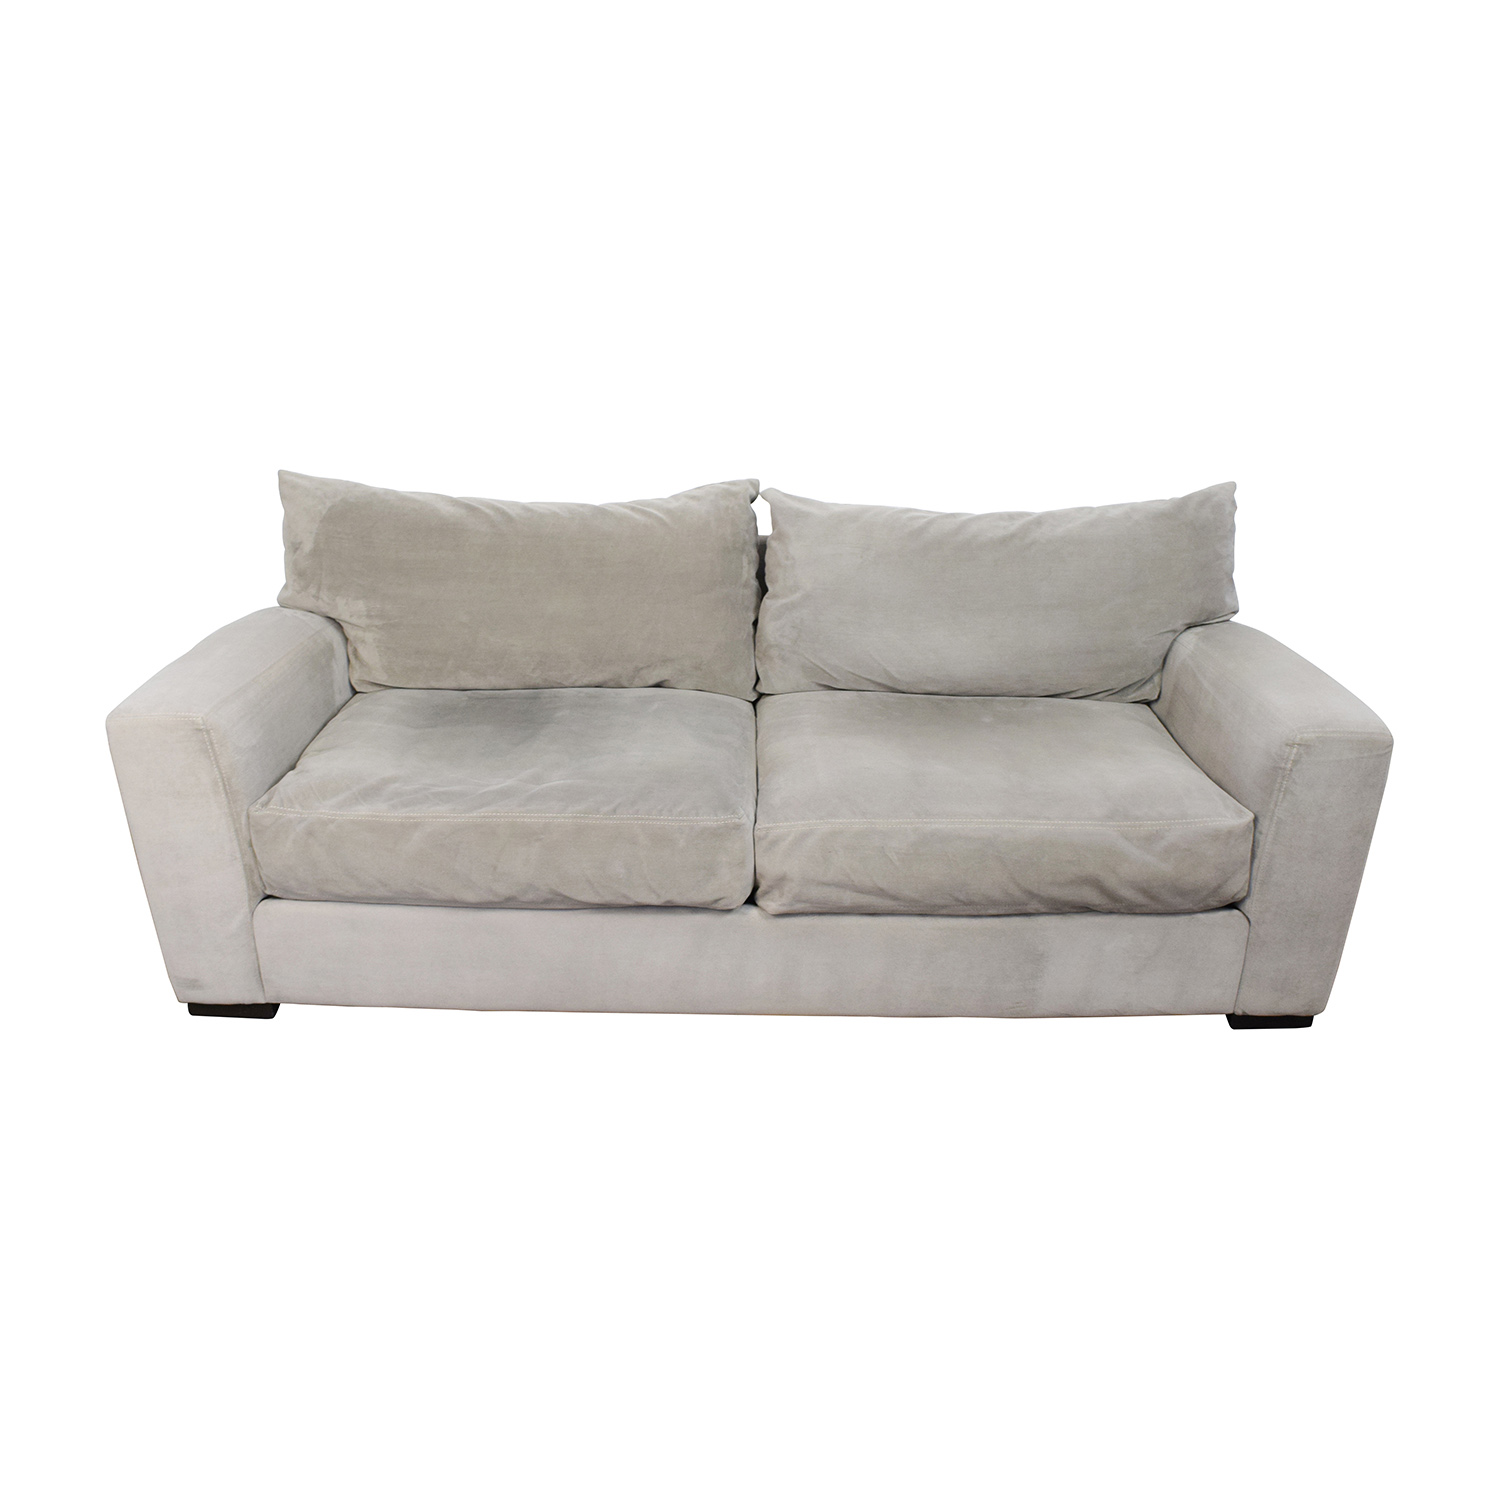 Raymour and Flanigan Raymour & Flanigan Carlin Grey Microfiber Sofa discount